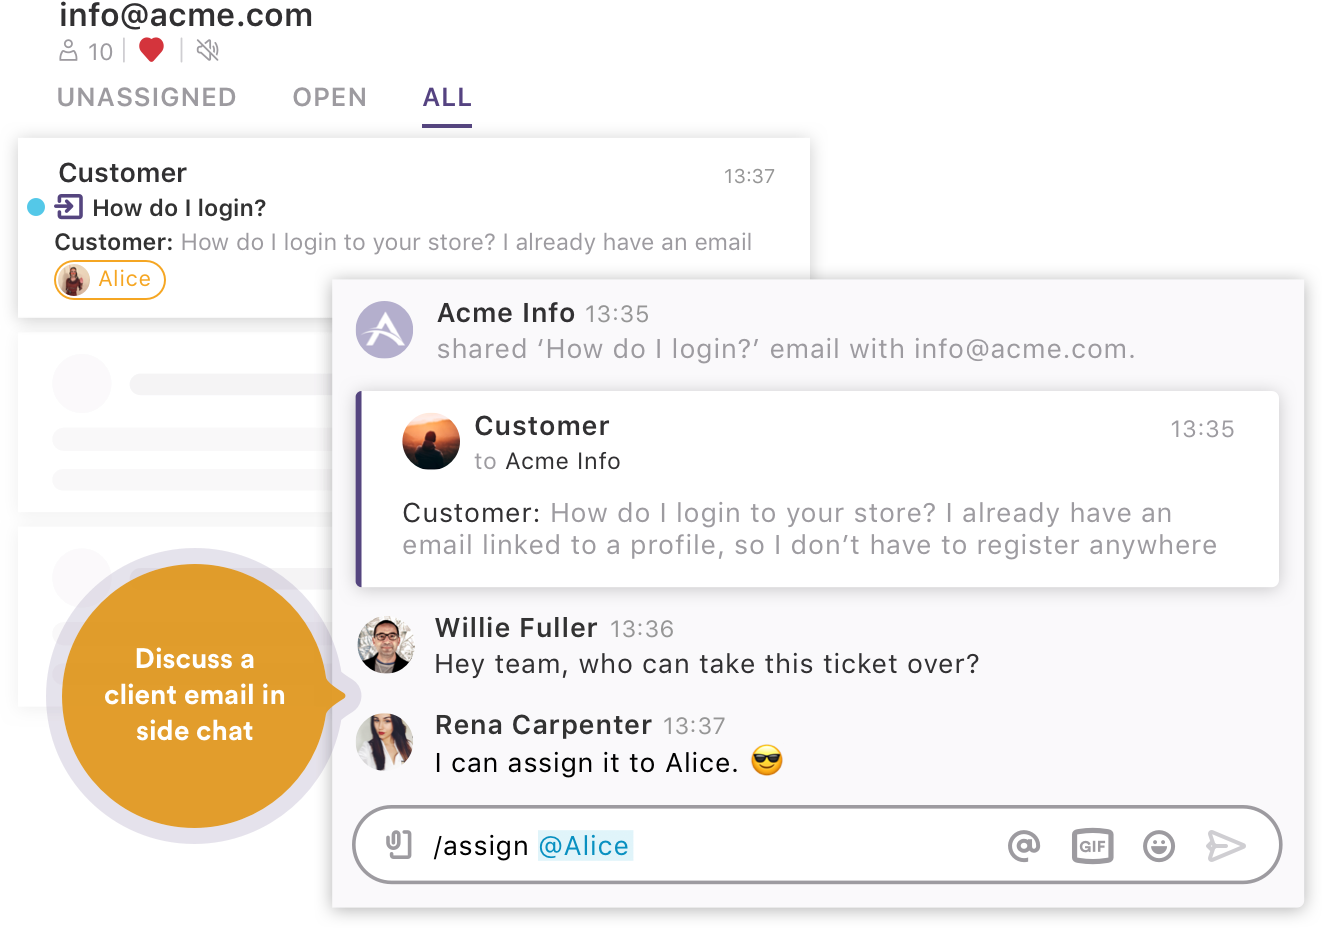 Discuss an email in side chat in shared inbox